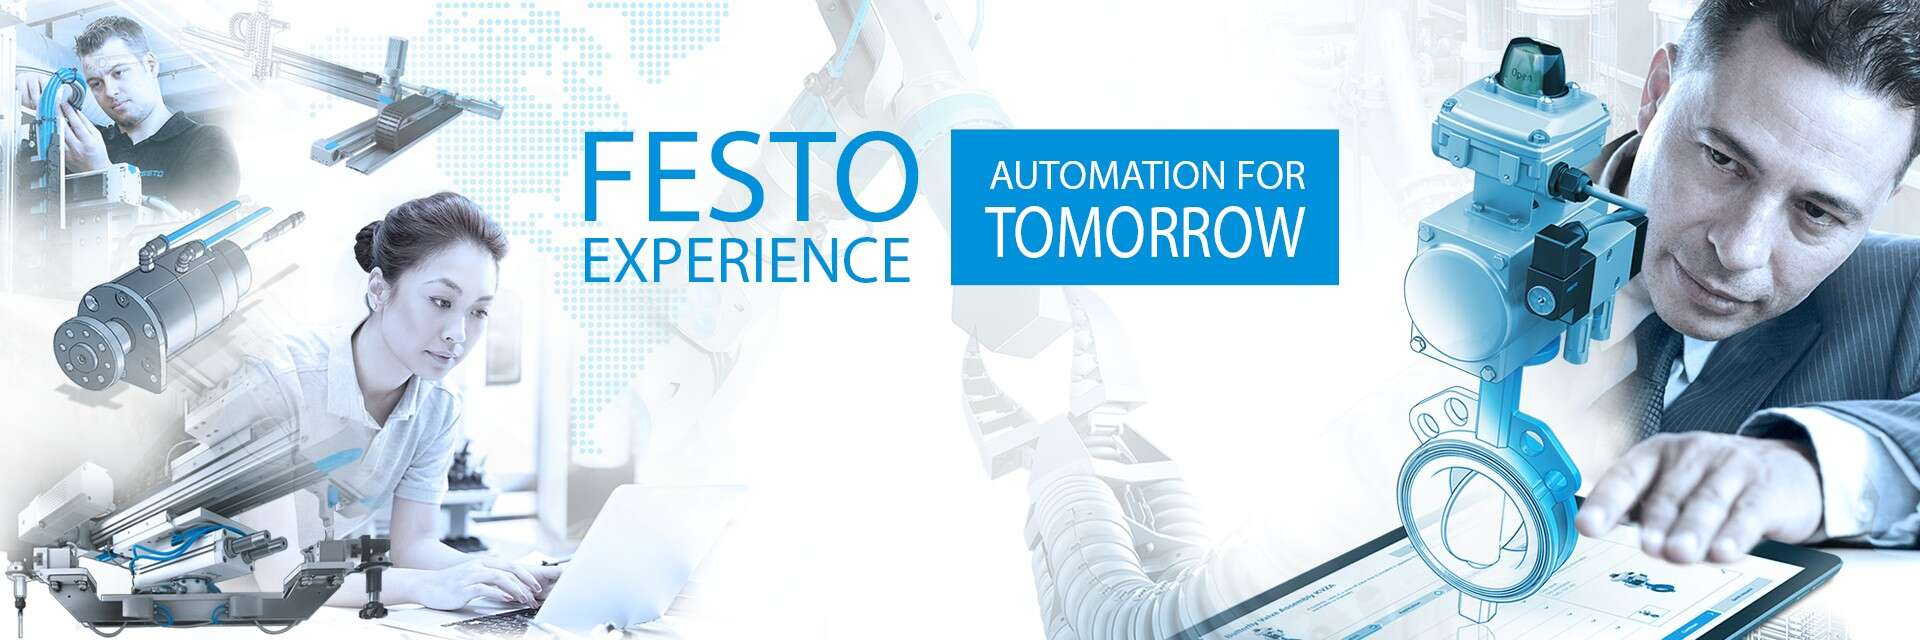 Message from Festo